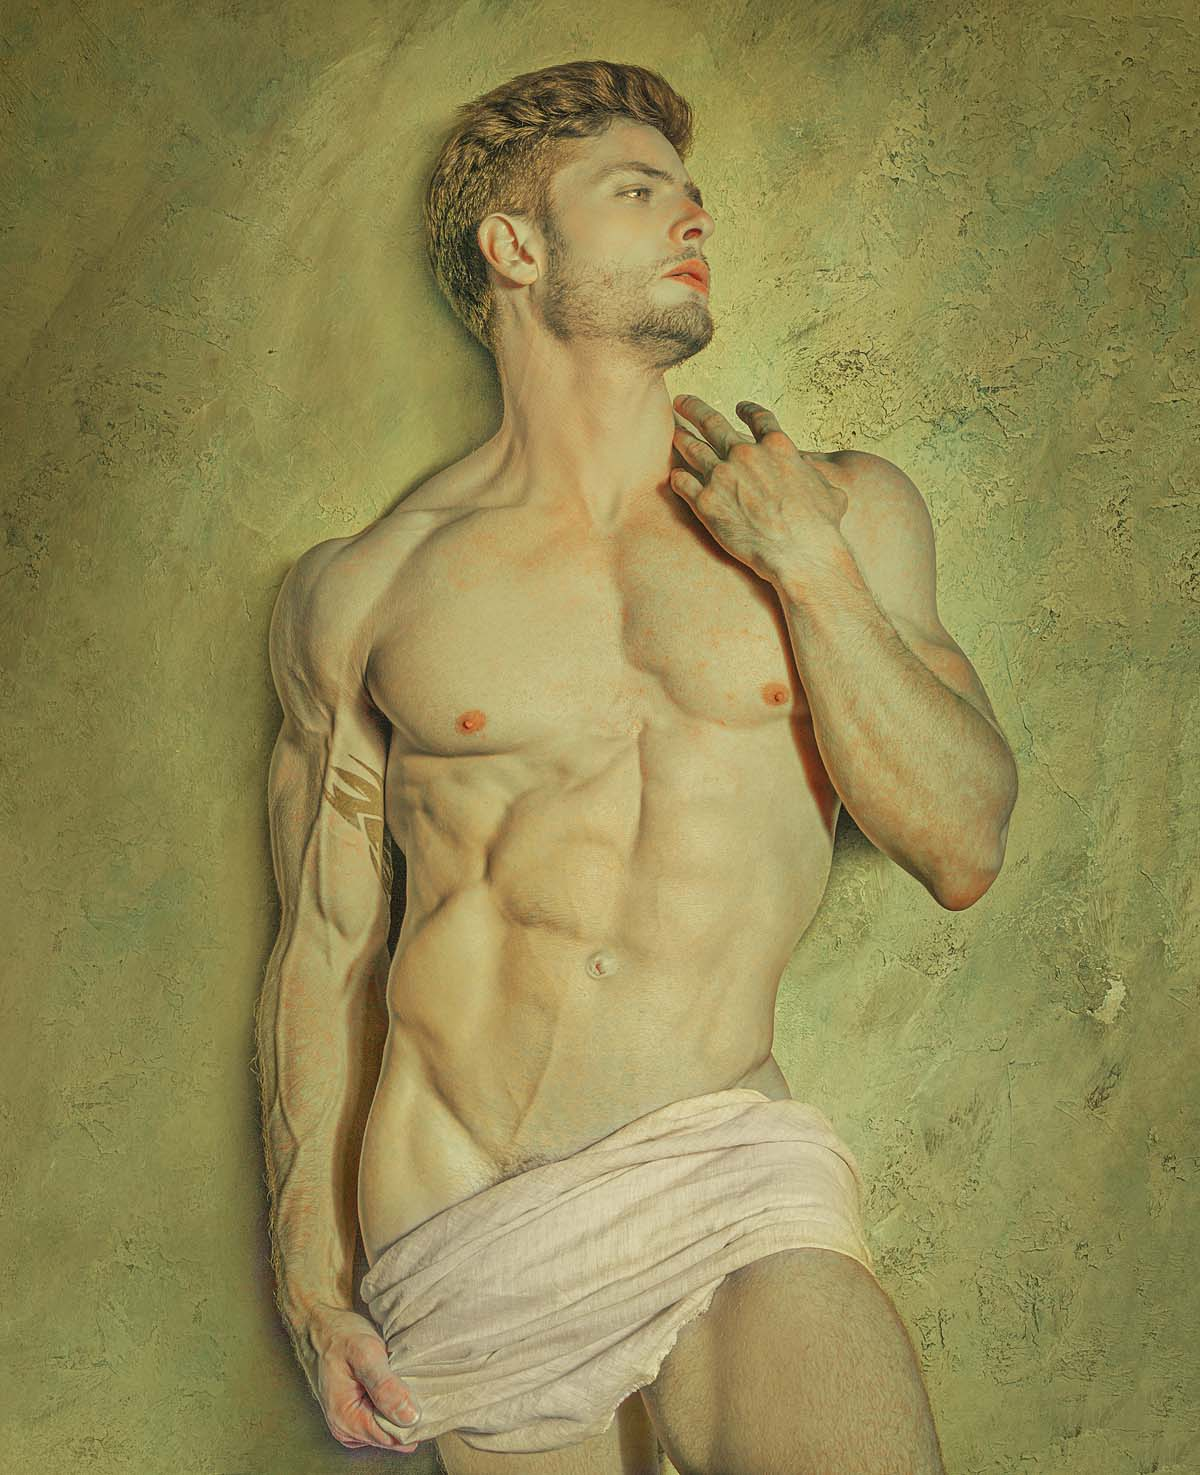 Male-Nude-Paintings-and-Male-Nude-Sculptures---Modern-Male-Nude-Photography-by-Troy-Schooneman.jpg